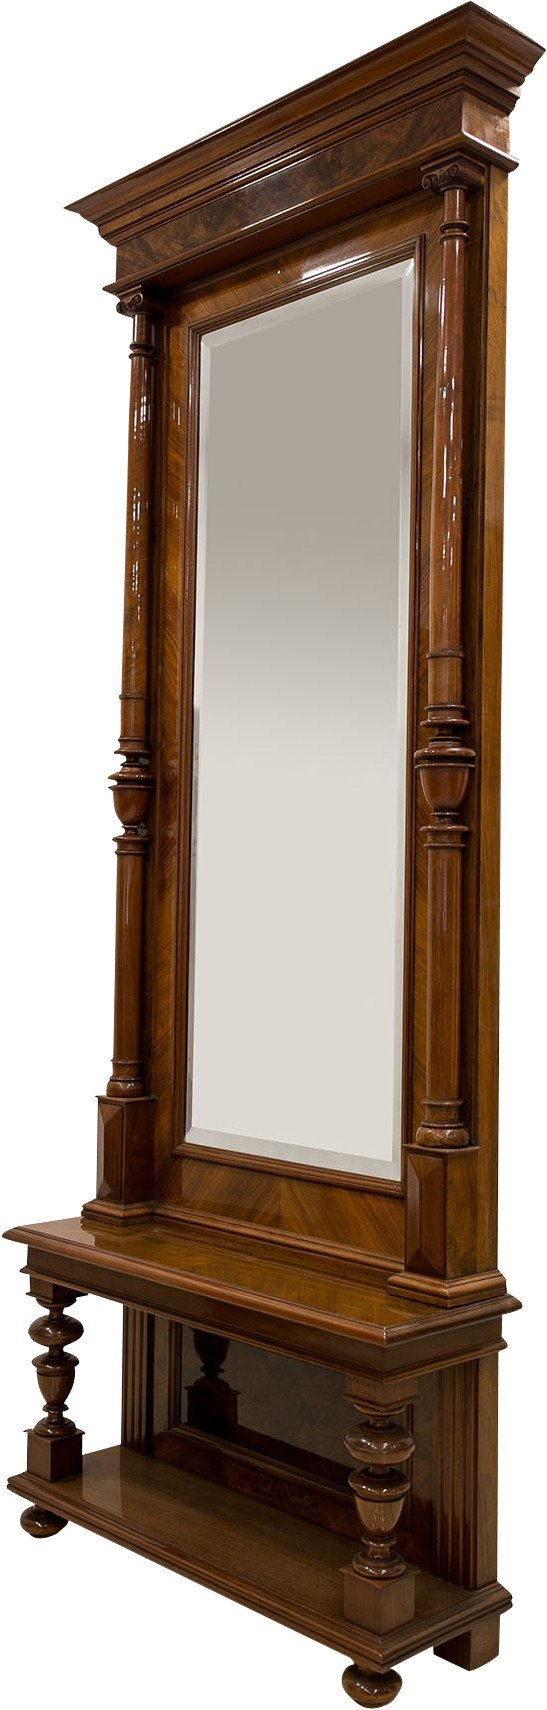 Console Mirror, Germany, 19th C.